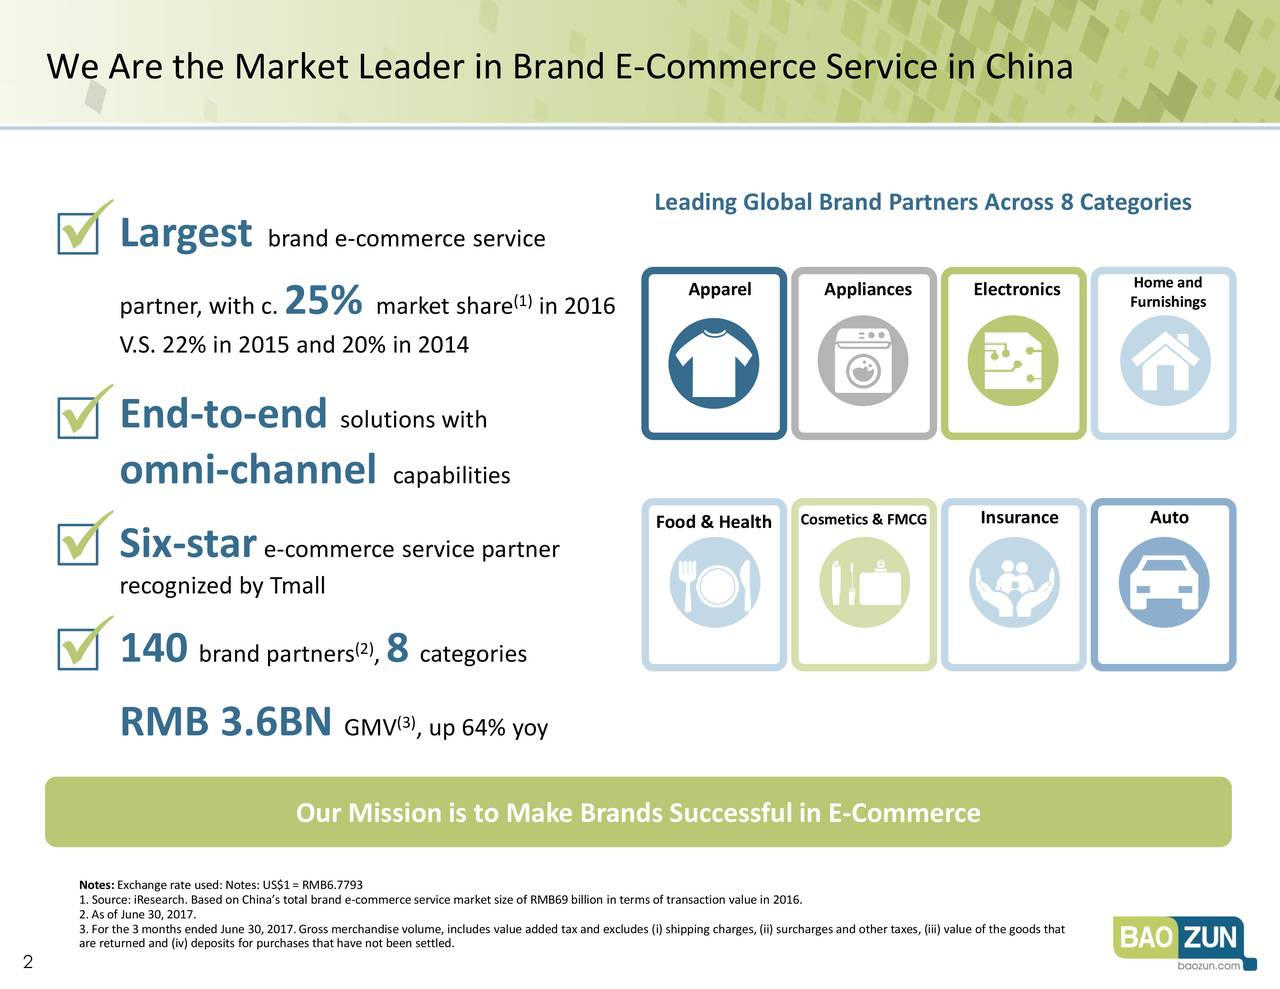 Leading Global Brand Partners Across 8 Categories Largest brand e-commerce service  partner, wi25%c. market shain 2016 Apparel AppliancesElectronicFurnishings V.S. 22% in 2015 and 20% in 2014 End-to-end solutions with  omni-channel capabilities Cosmetics & FMCGrance Auto Food & Health  Six-star e-commerce service partner recognized by Tmall 140 brand partner8 categories  (3) RMB 3.6BN GMV , up 64% yoy Our Mission is to Make Brands Successful in E-Commerce 1. Source: iResearch. Based on China's total brand e-commerce service market size of RMB69 billion in terms of transaction value in 2016. 3. For the 3 months ended June 30,2017.Gross merchandise volume, includes value added tax and excludes (i) shipping charges, (ii) surcharges and other taxes, (iii) value of the goods that 2 are returned and (iv) deposits for purchases that have not been settled.